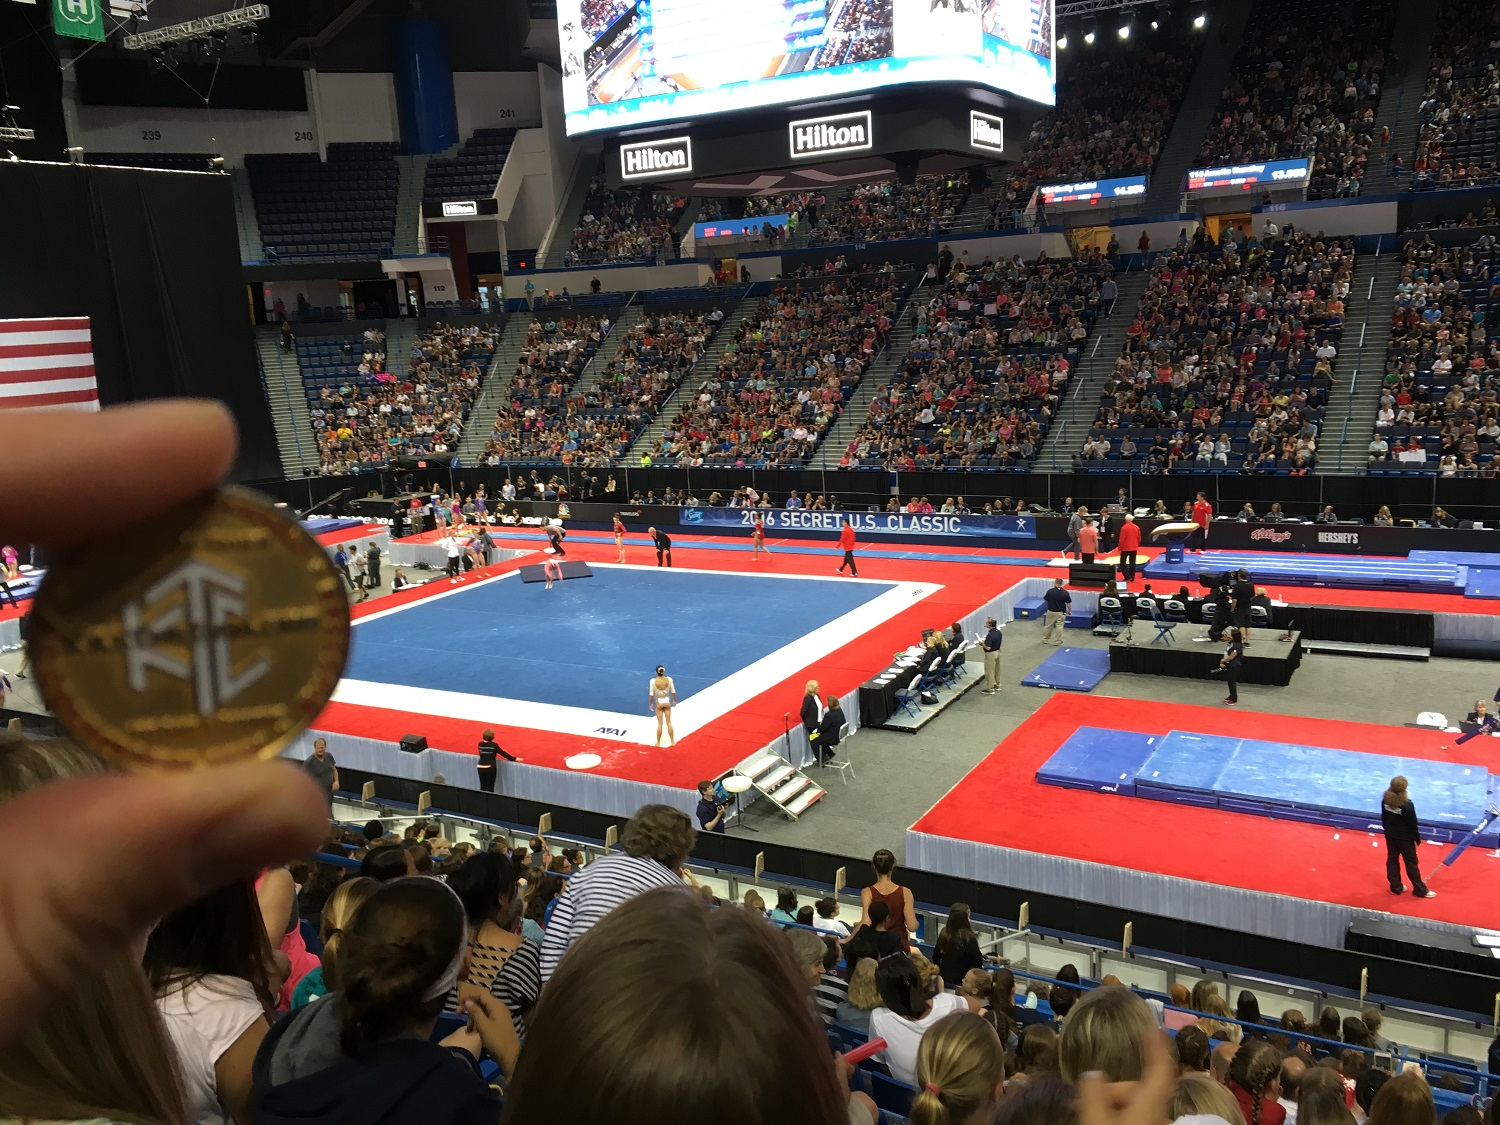 Photo of Nolaq at the US Gymnastics Championships